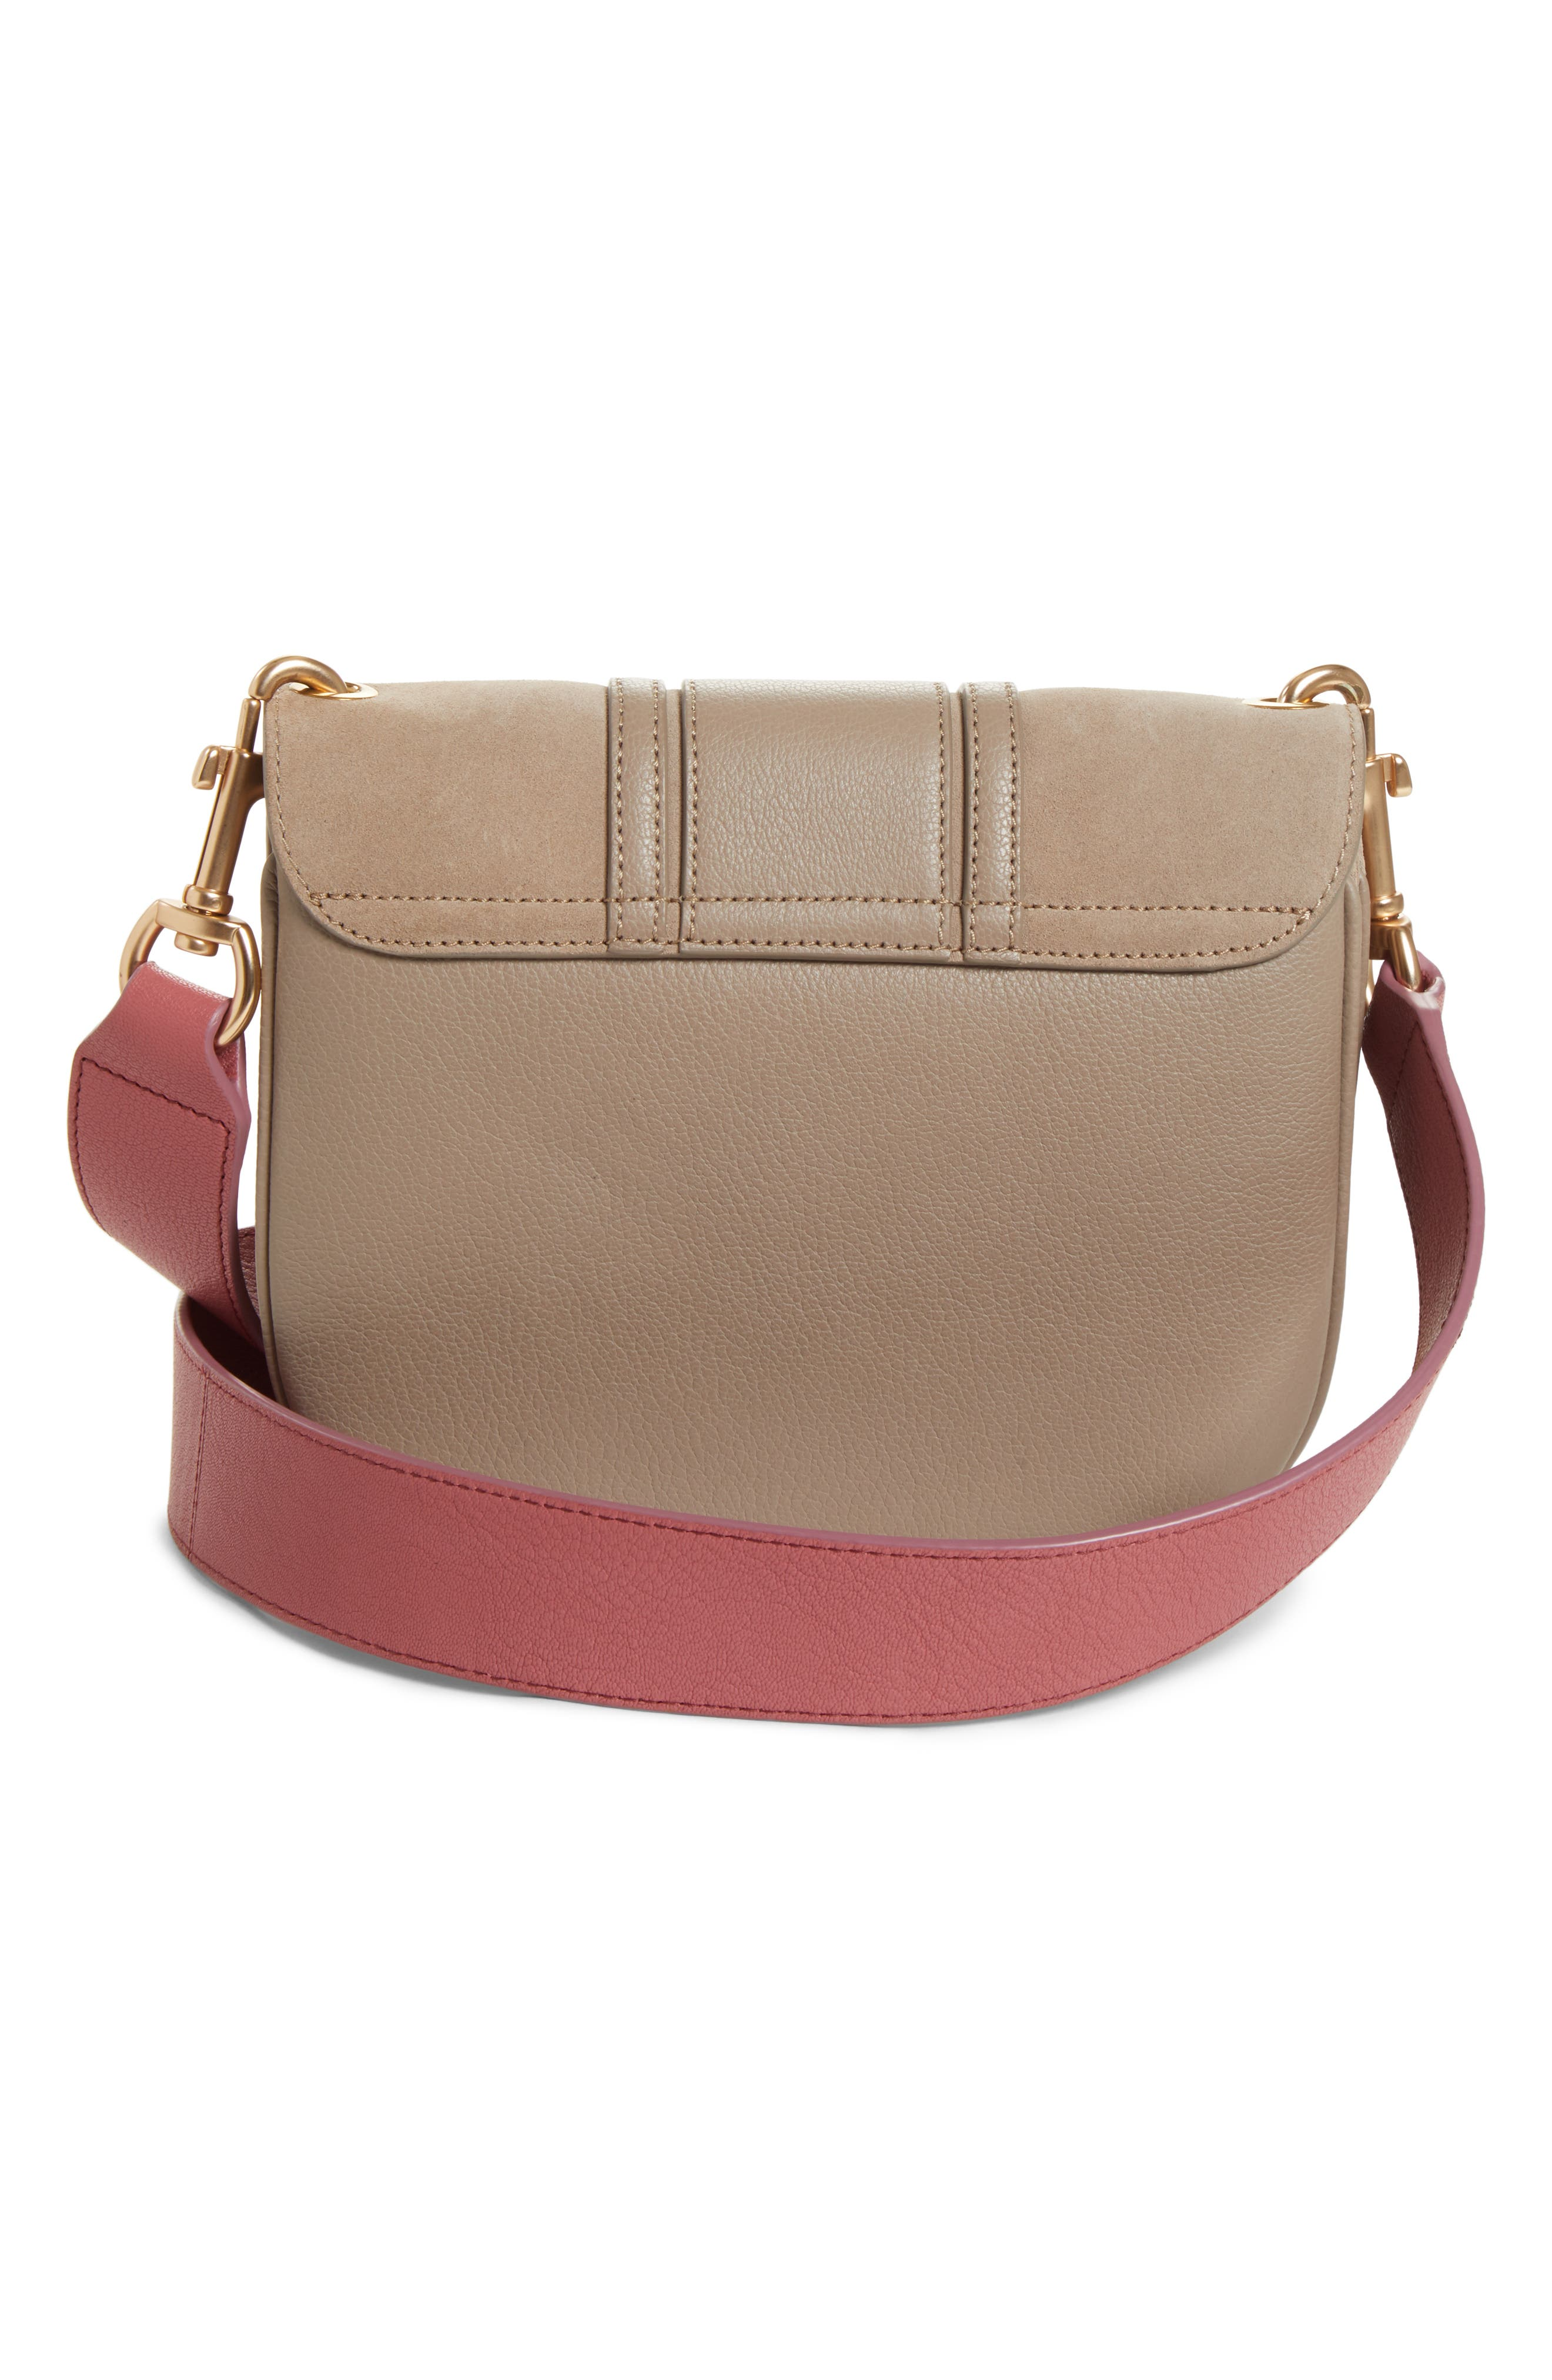 Hana Leather Shoulder Bag,                             Alternate thumbnail 3, color,                             020